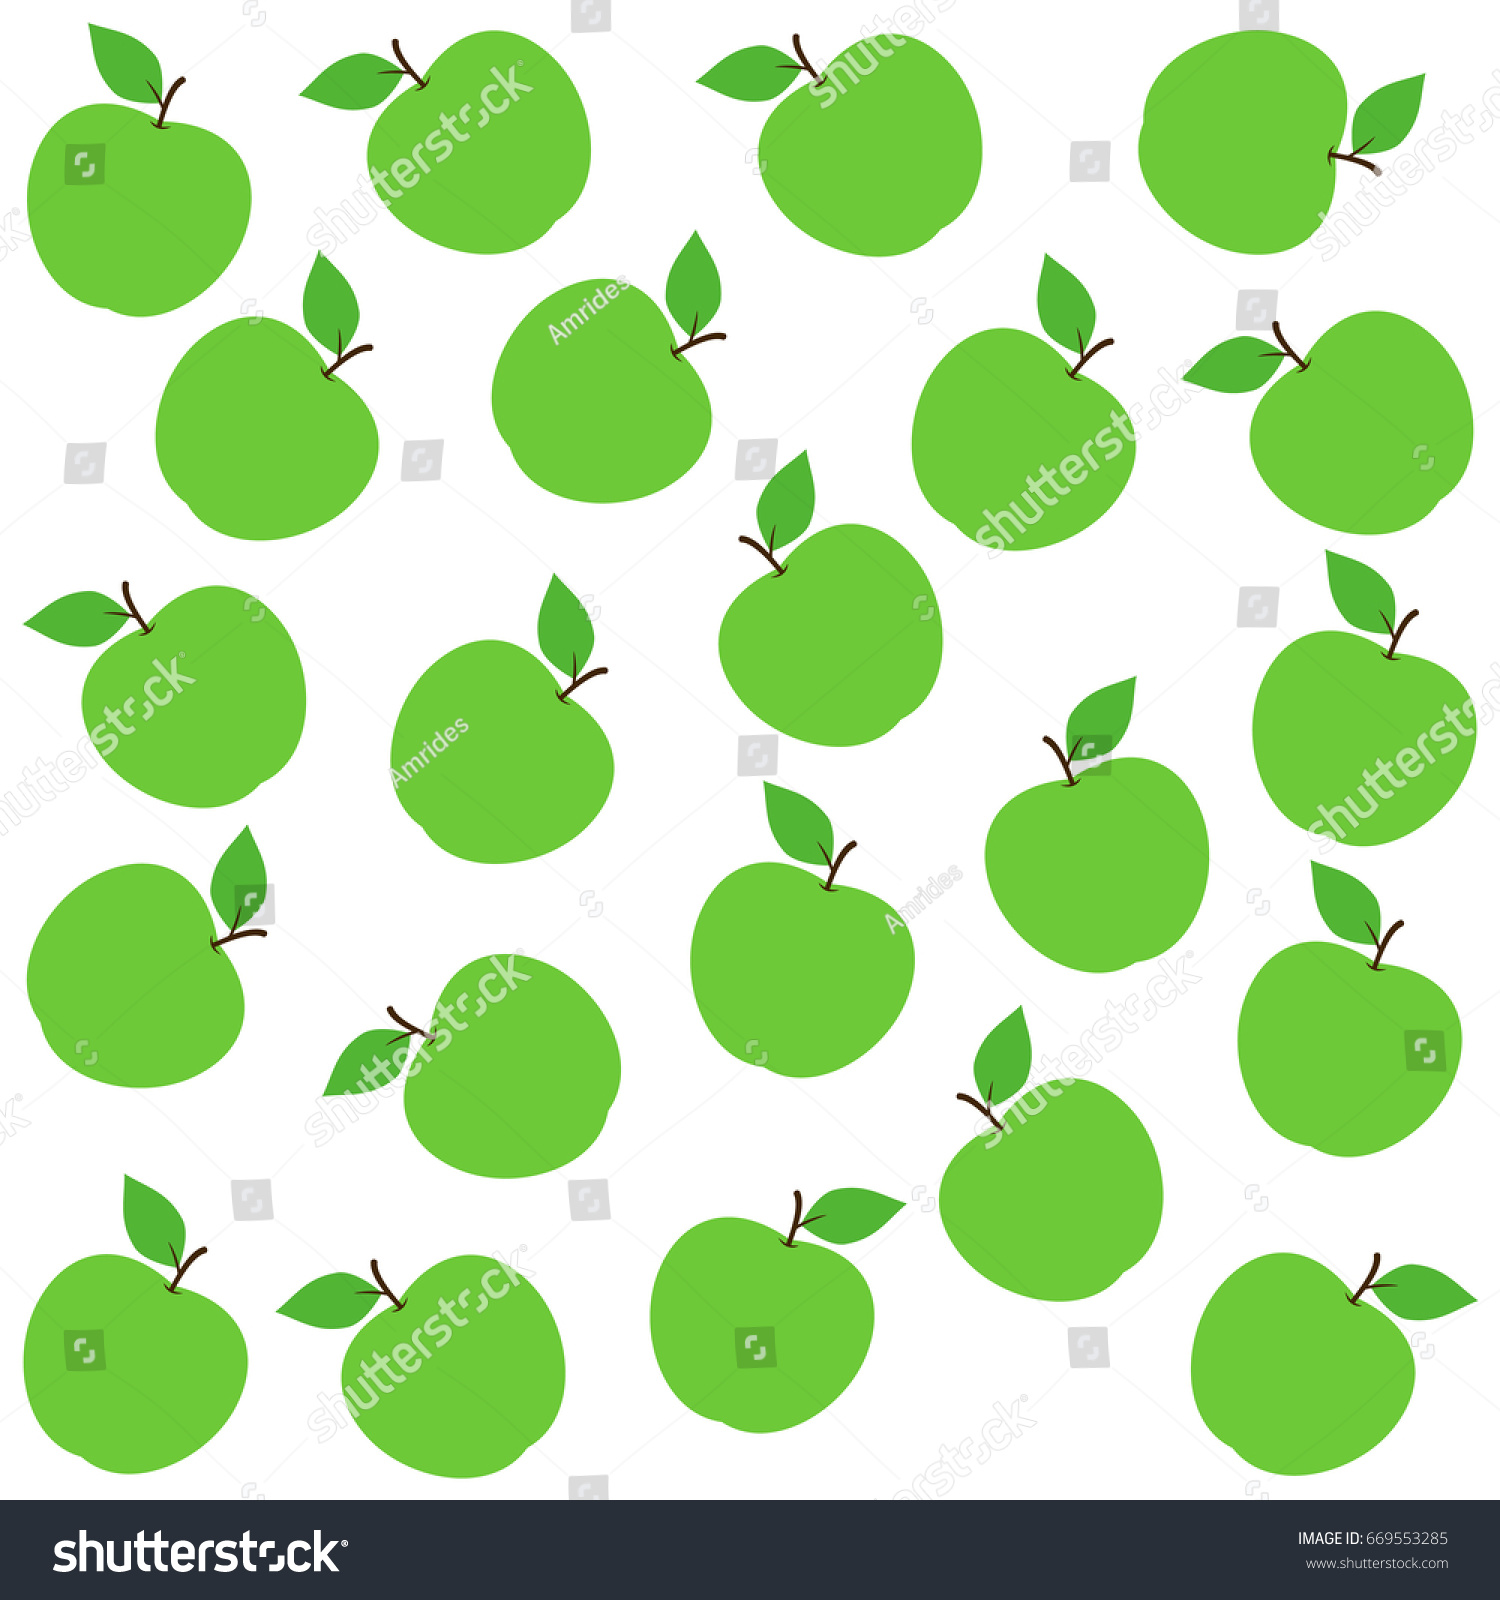 Must see Wallpaper Macbook Pattern - stock-vector-seamless-green-apple-pattern-background-wallpaper-isolated-on-white-background-669553285  Perfect Image Reference_866551.jpg